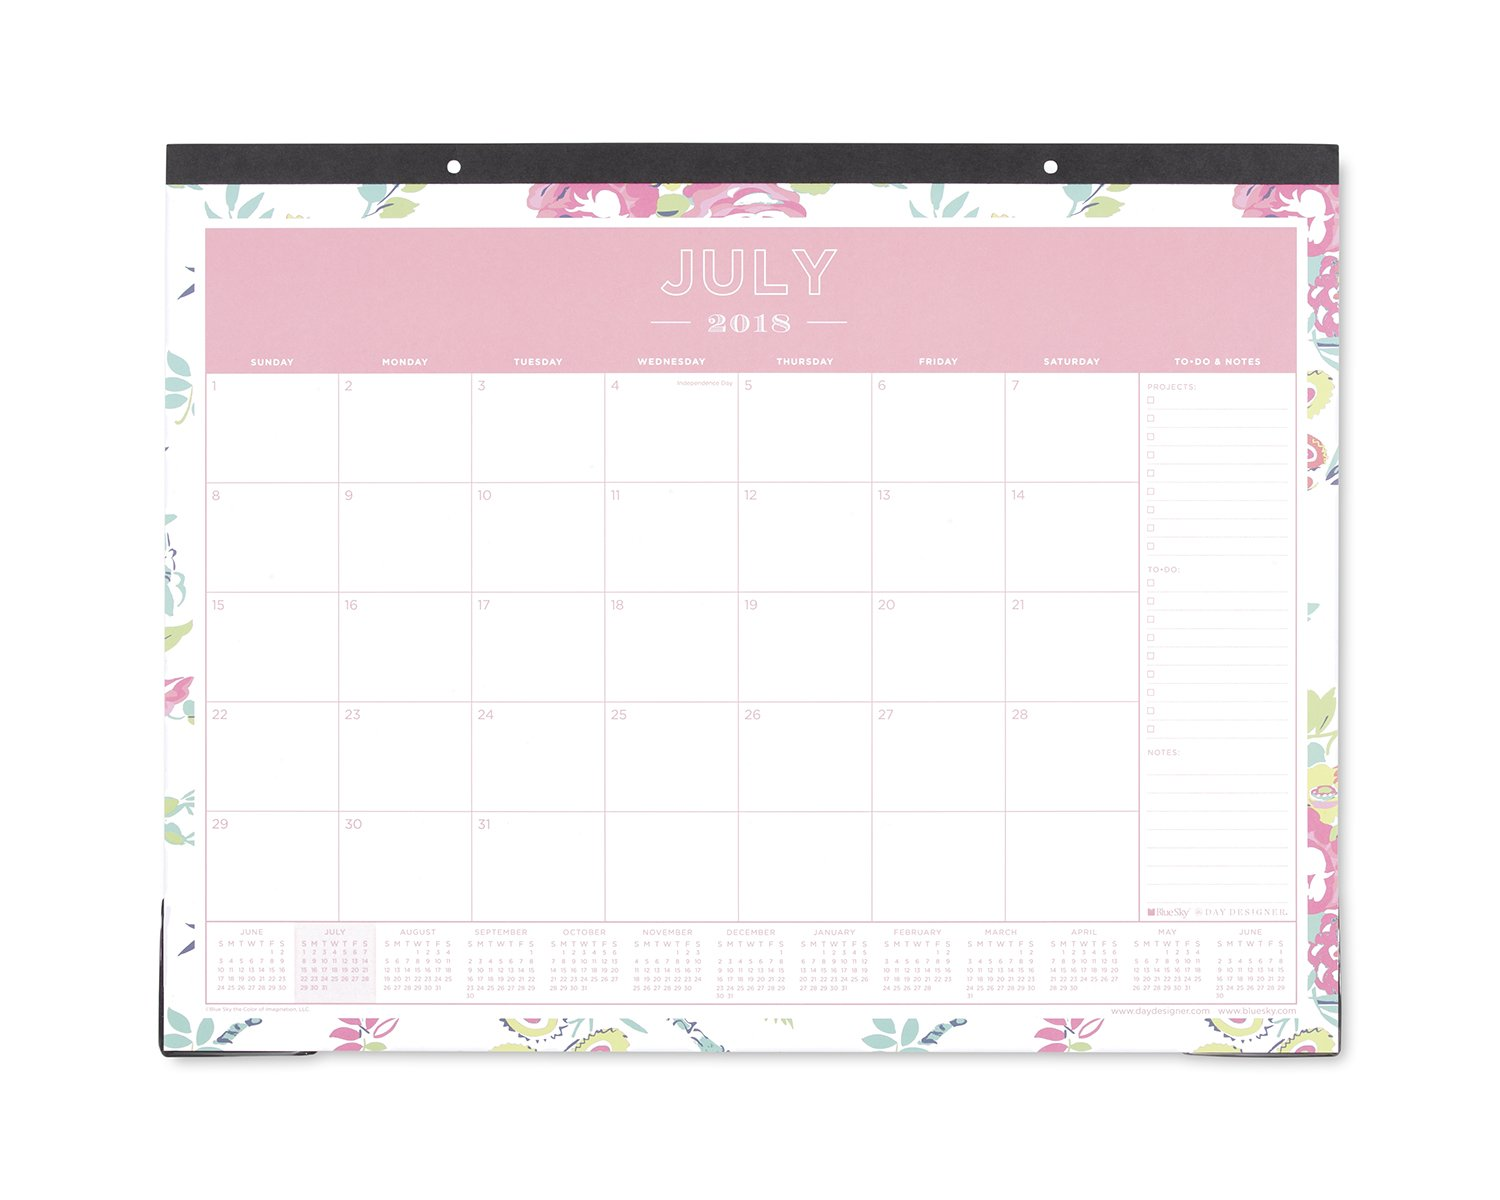 Day Designer for Blue Sky 2018-2019 Academic Year Monthly Desk Pad Calendar, 22'' x 17'', Peyton White Floral Design